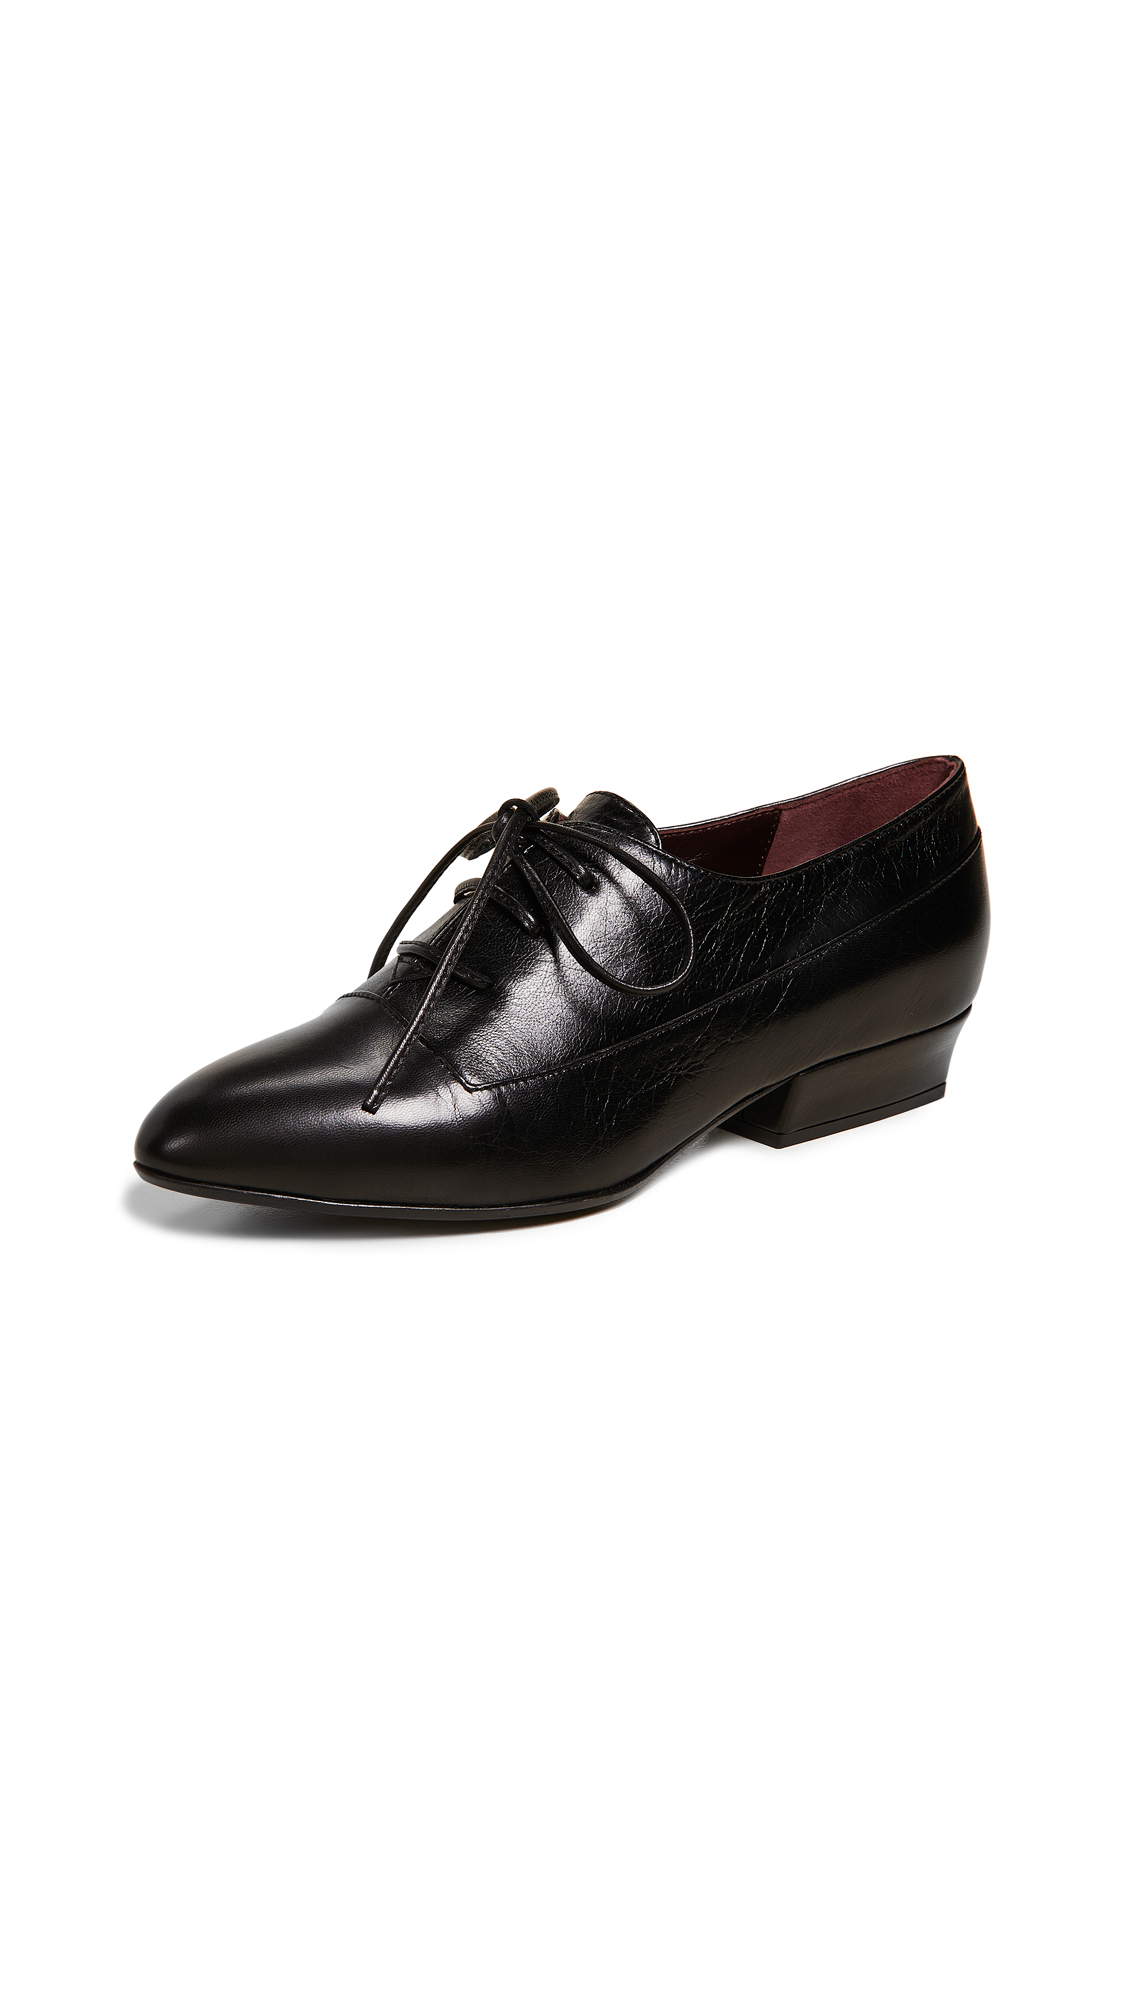 Marc Jacobs Leather Oxfords